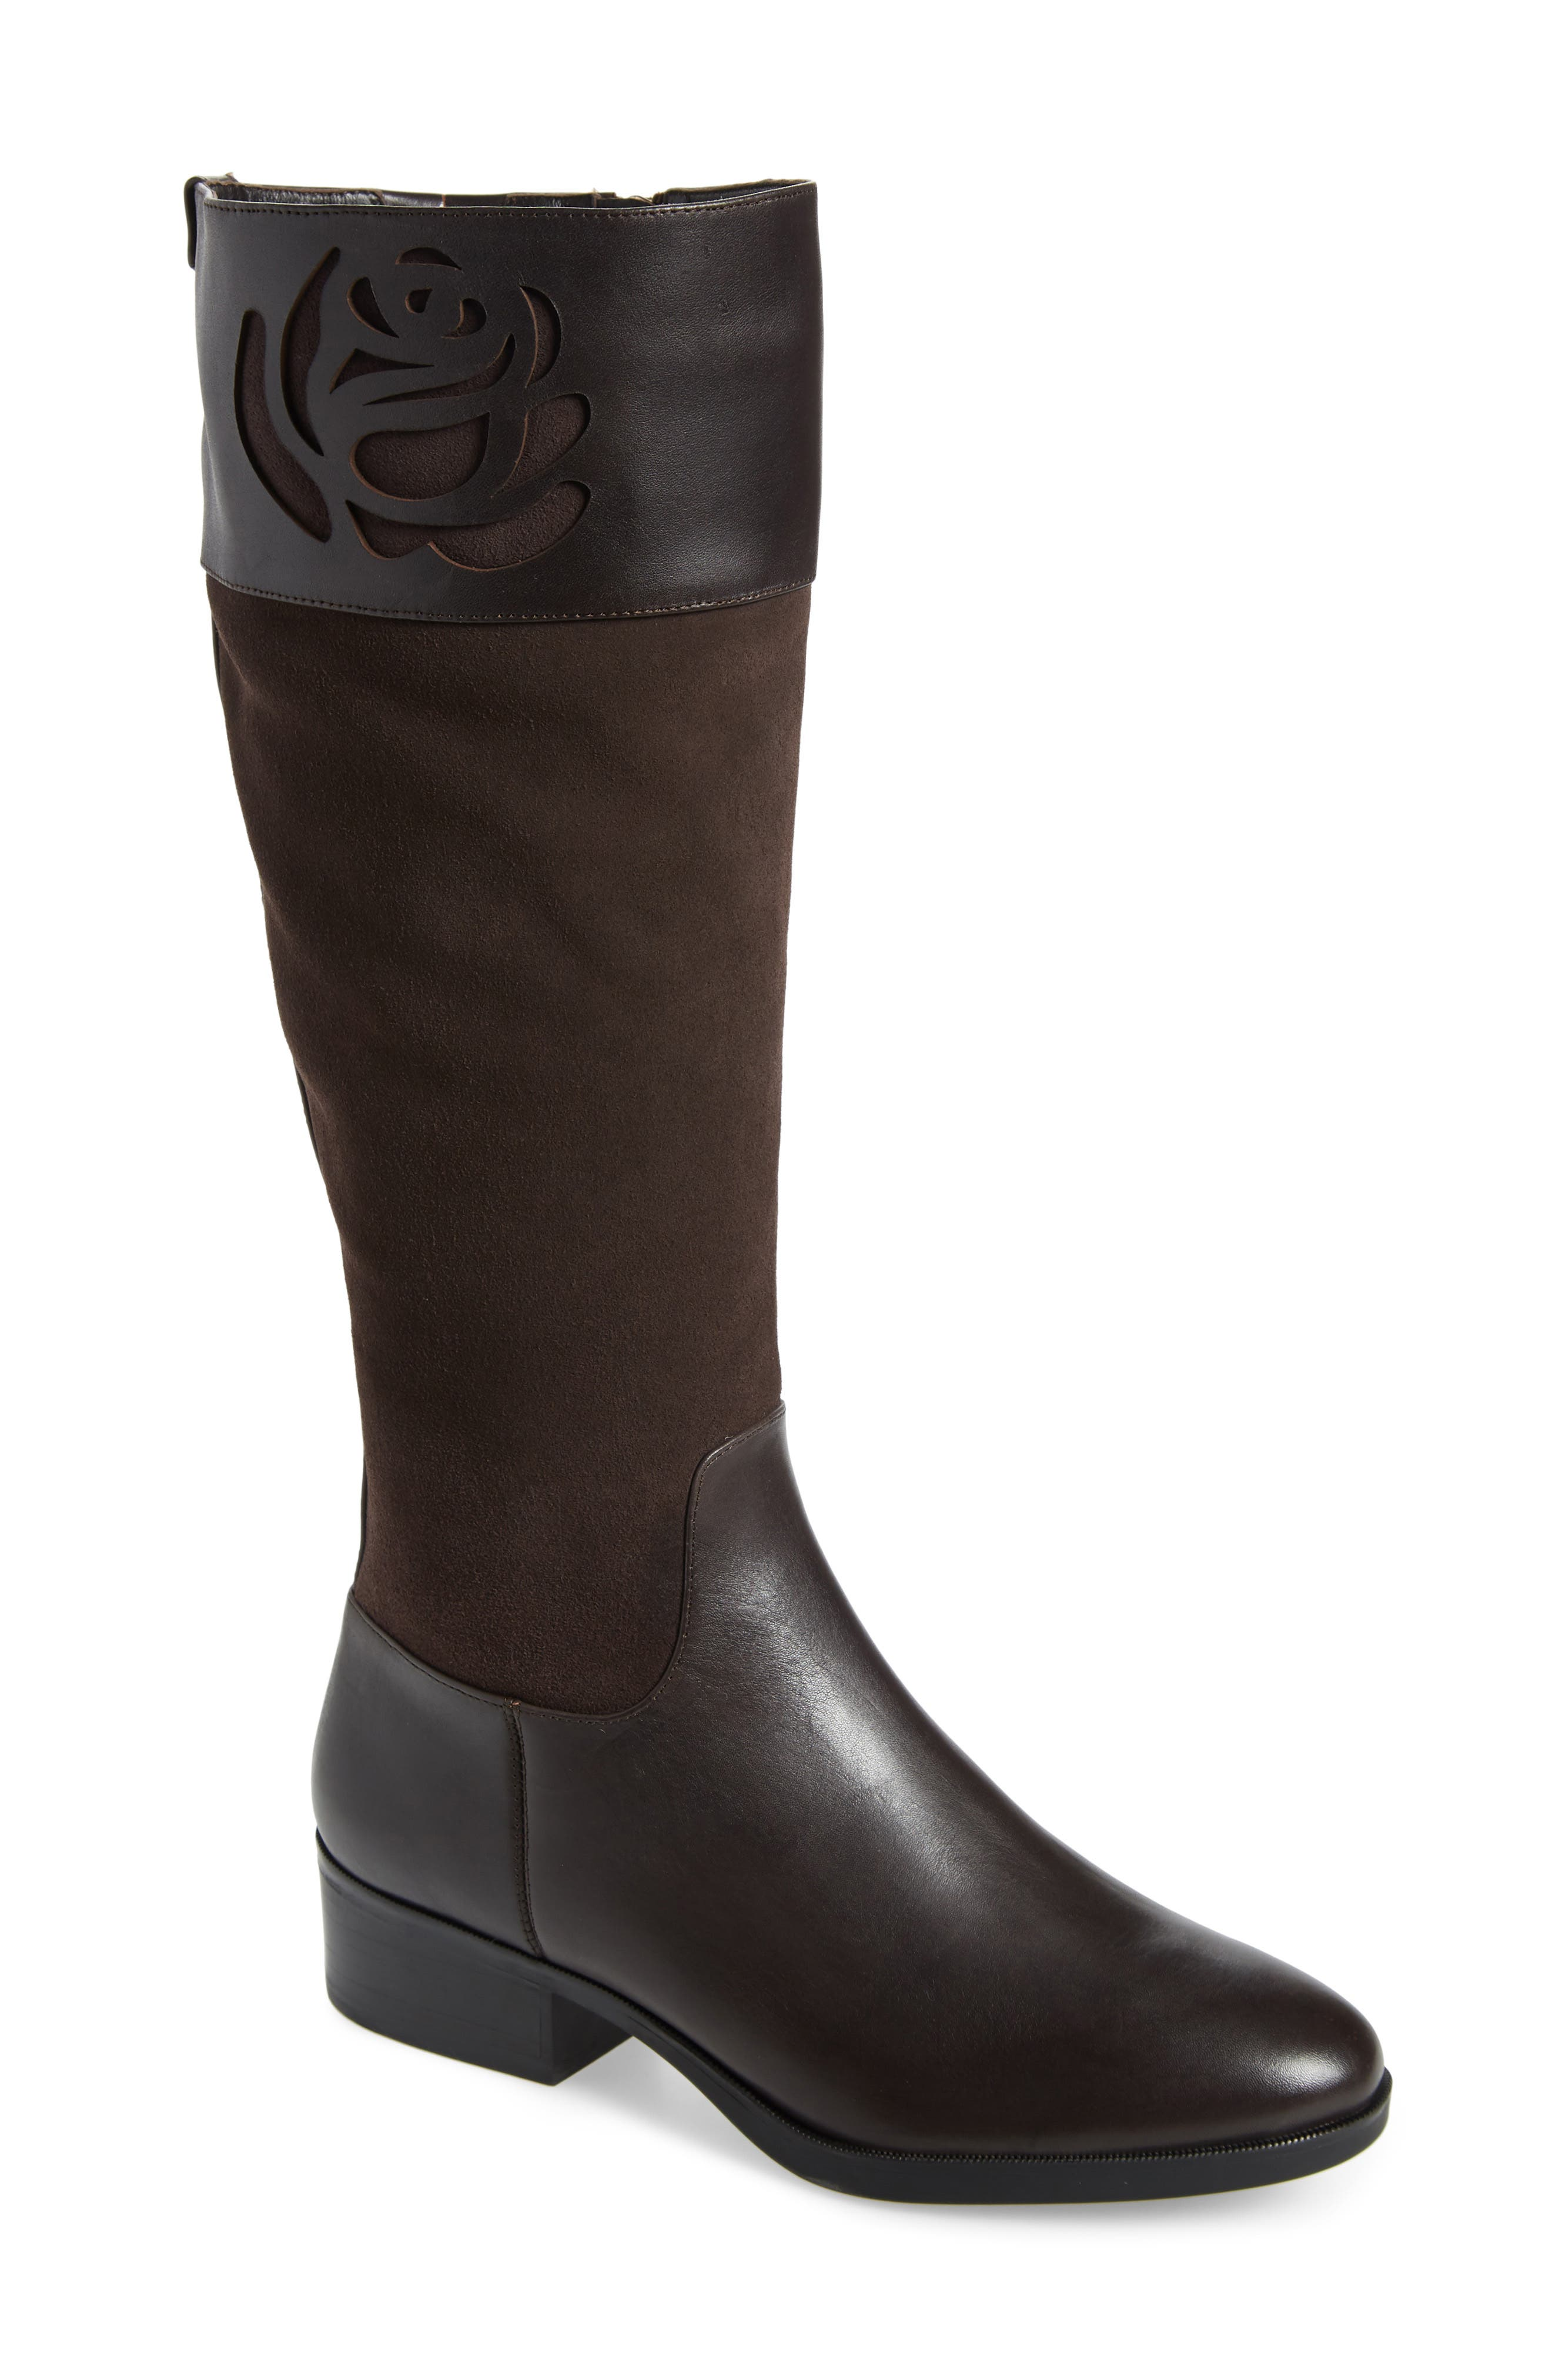 Taryn Rose Georgia Water Resistant Collection Boot, Brown